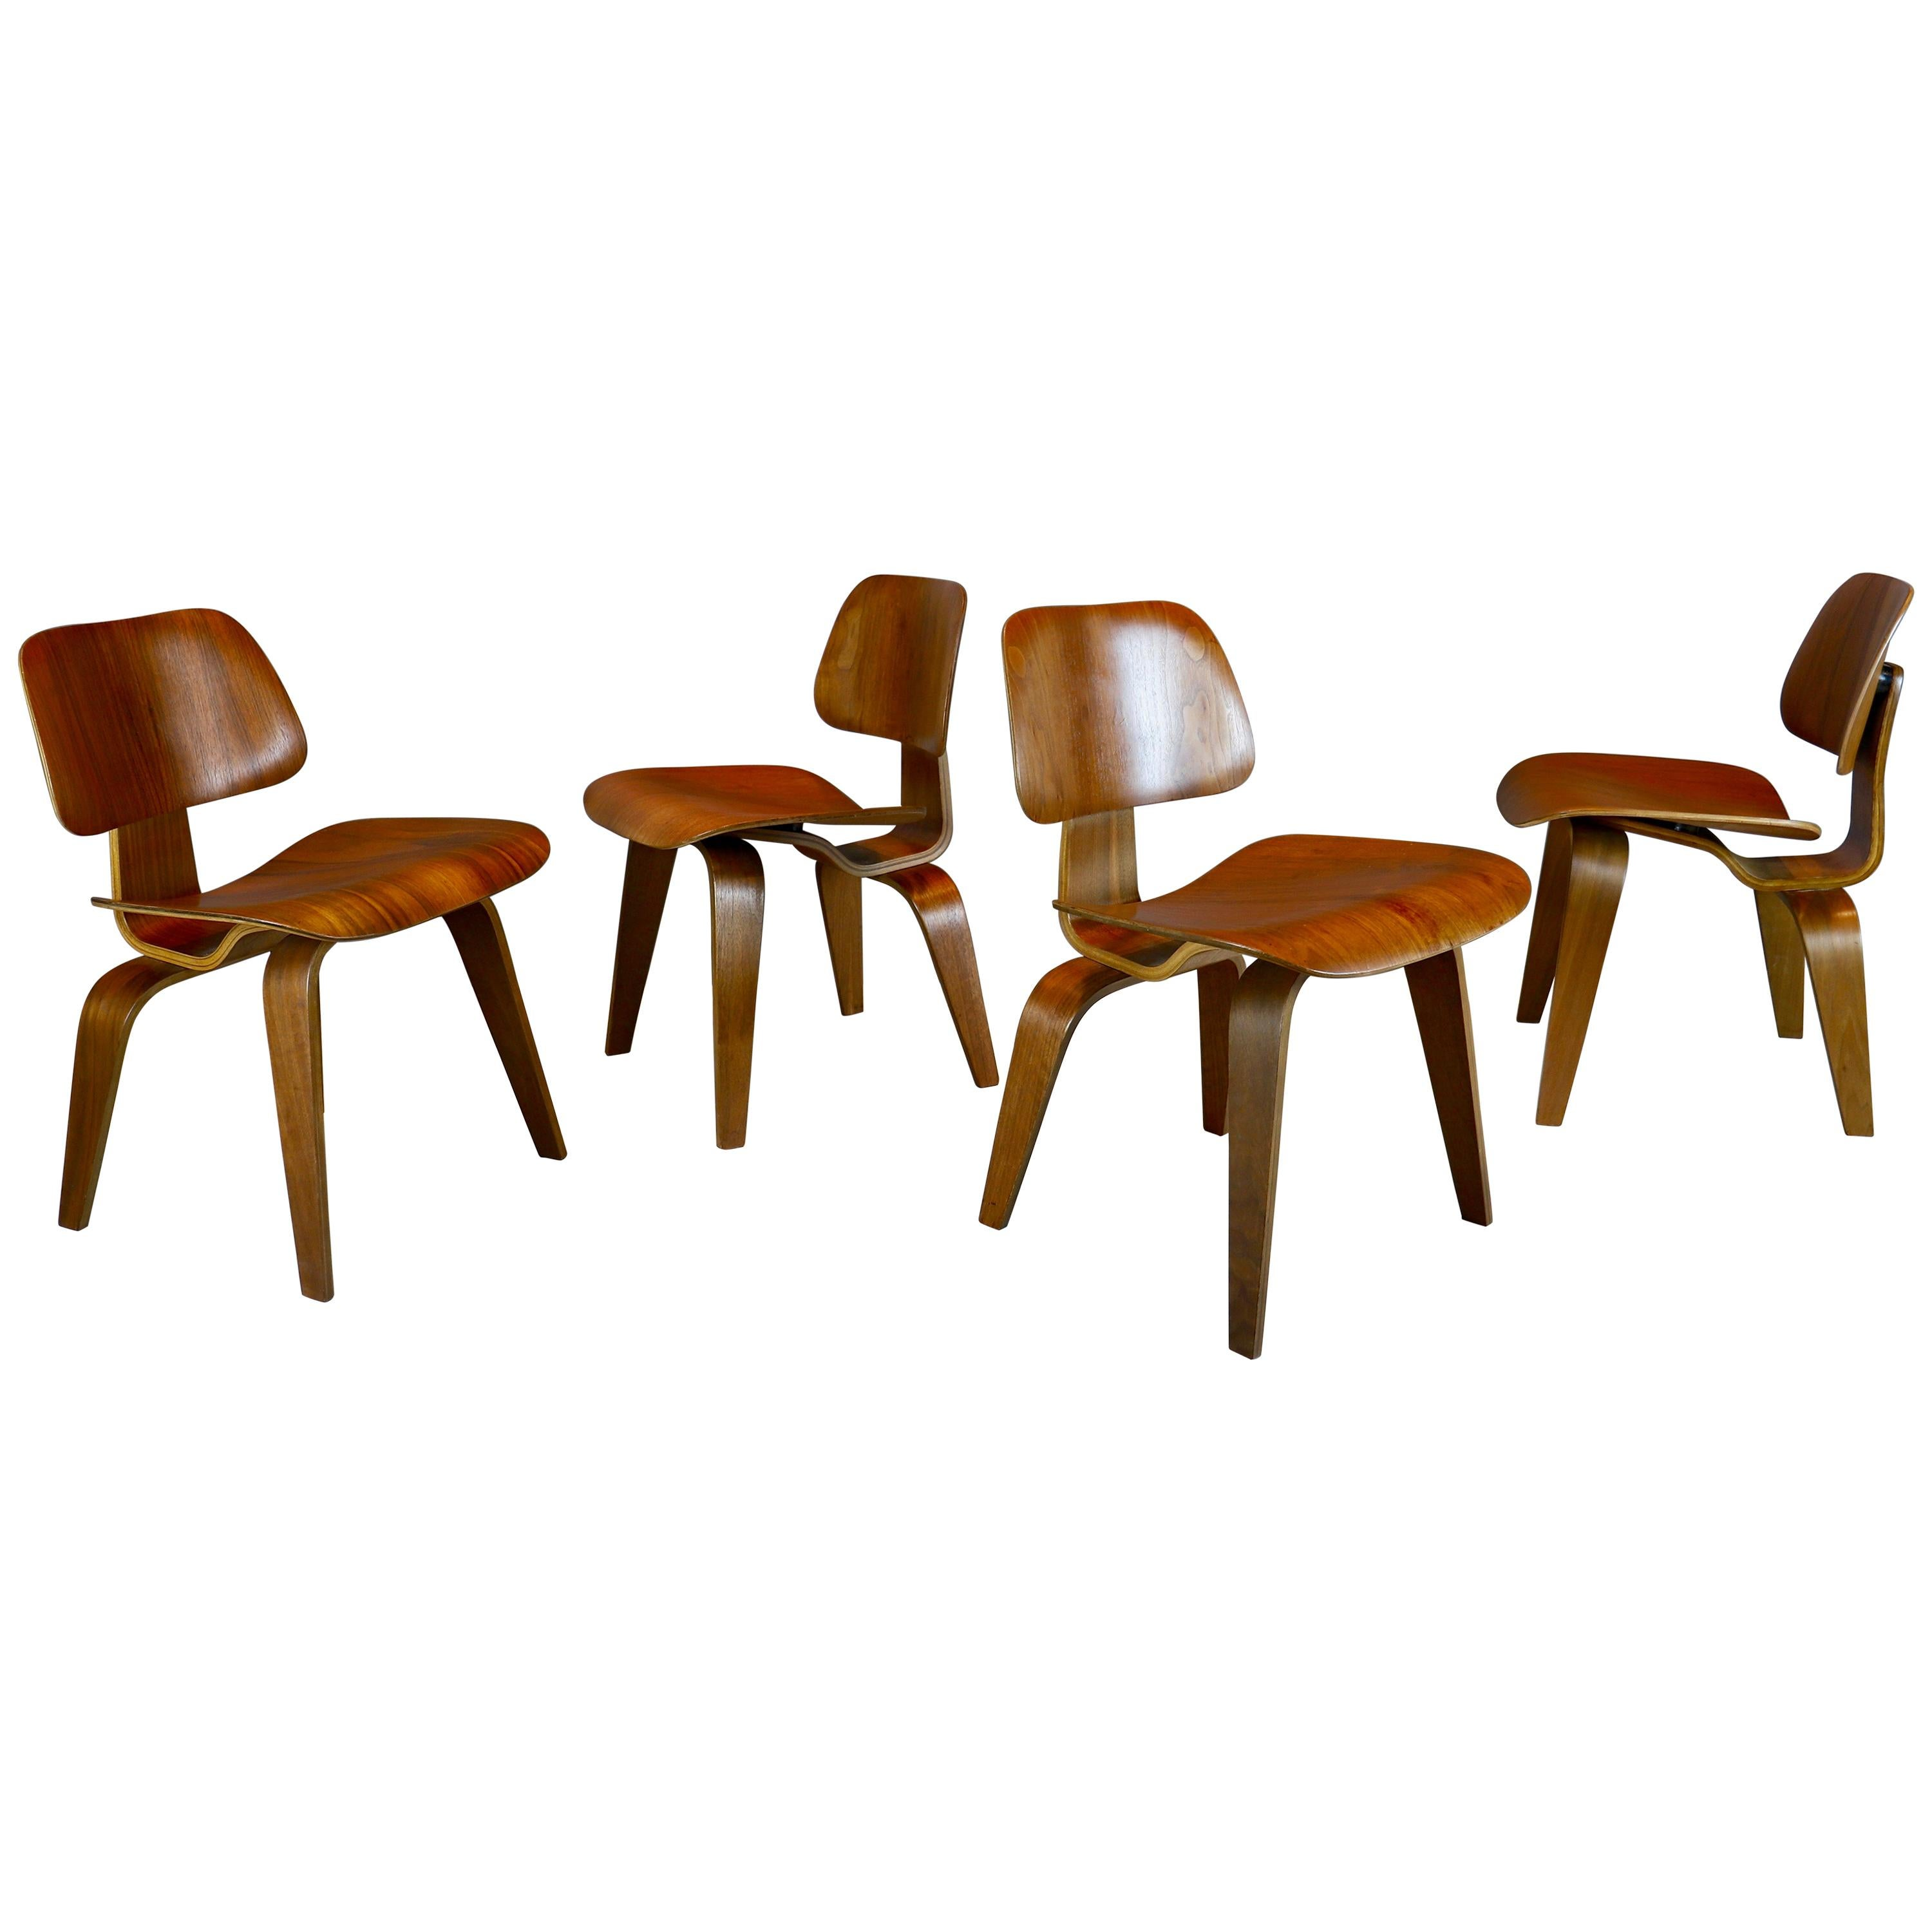 """Charles and Ray Eames """"DCW"""" Dining Chairs, 1940s"""